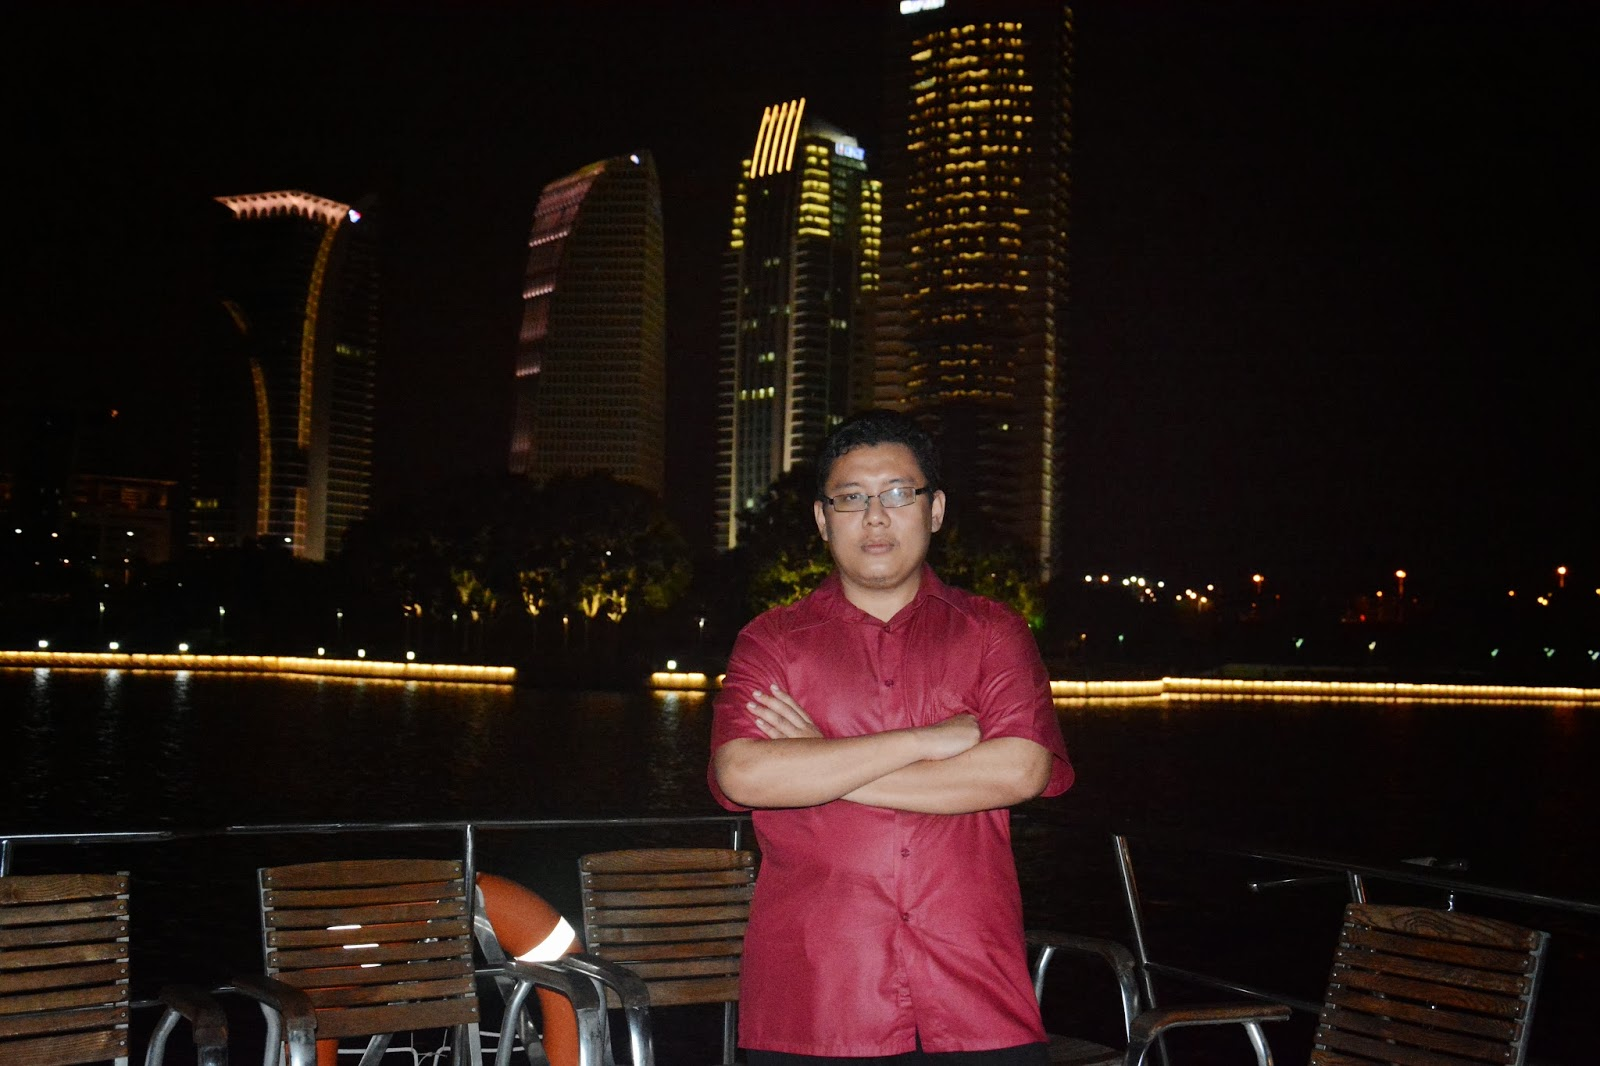 putrajaya,lake,cruise,kapal,dinner,free,supermoms